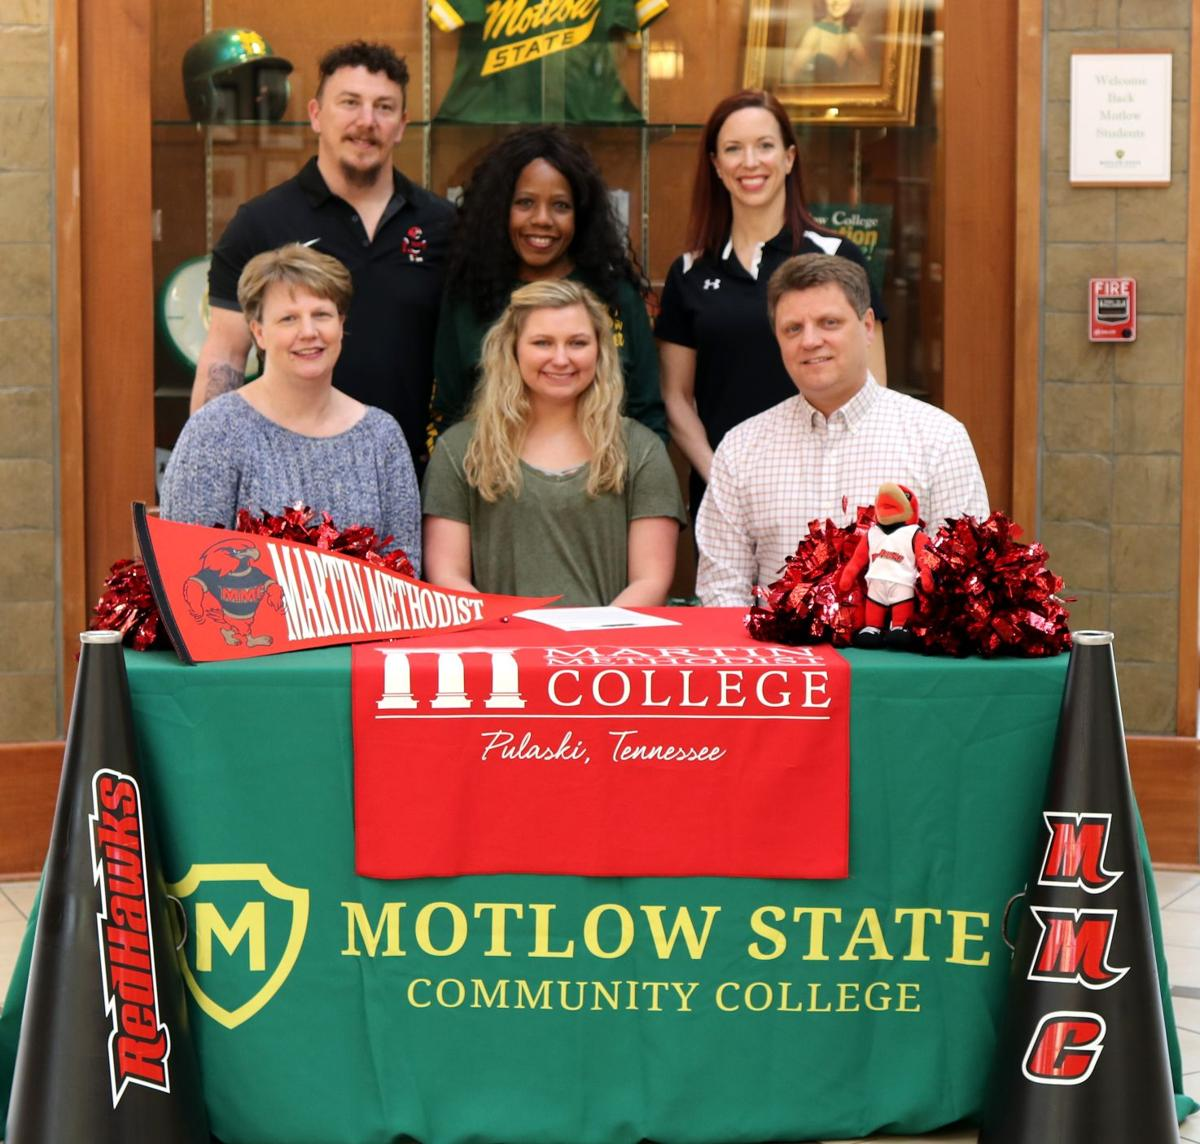 Motlow State cheerleaders awarded transfer scholarships to Martin Methodist College